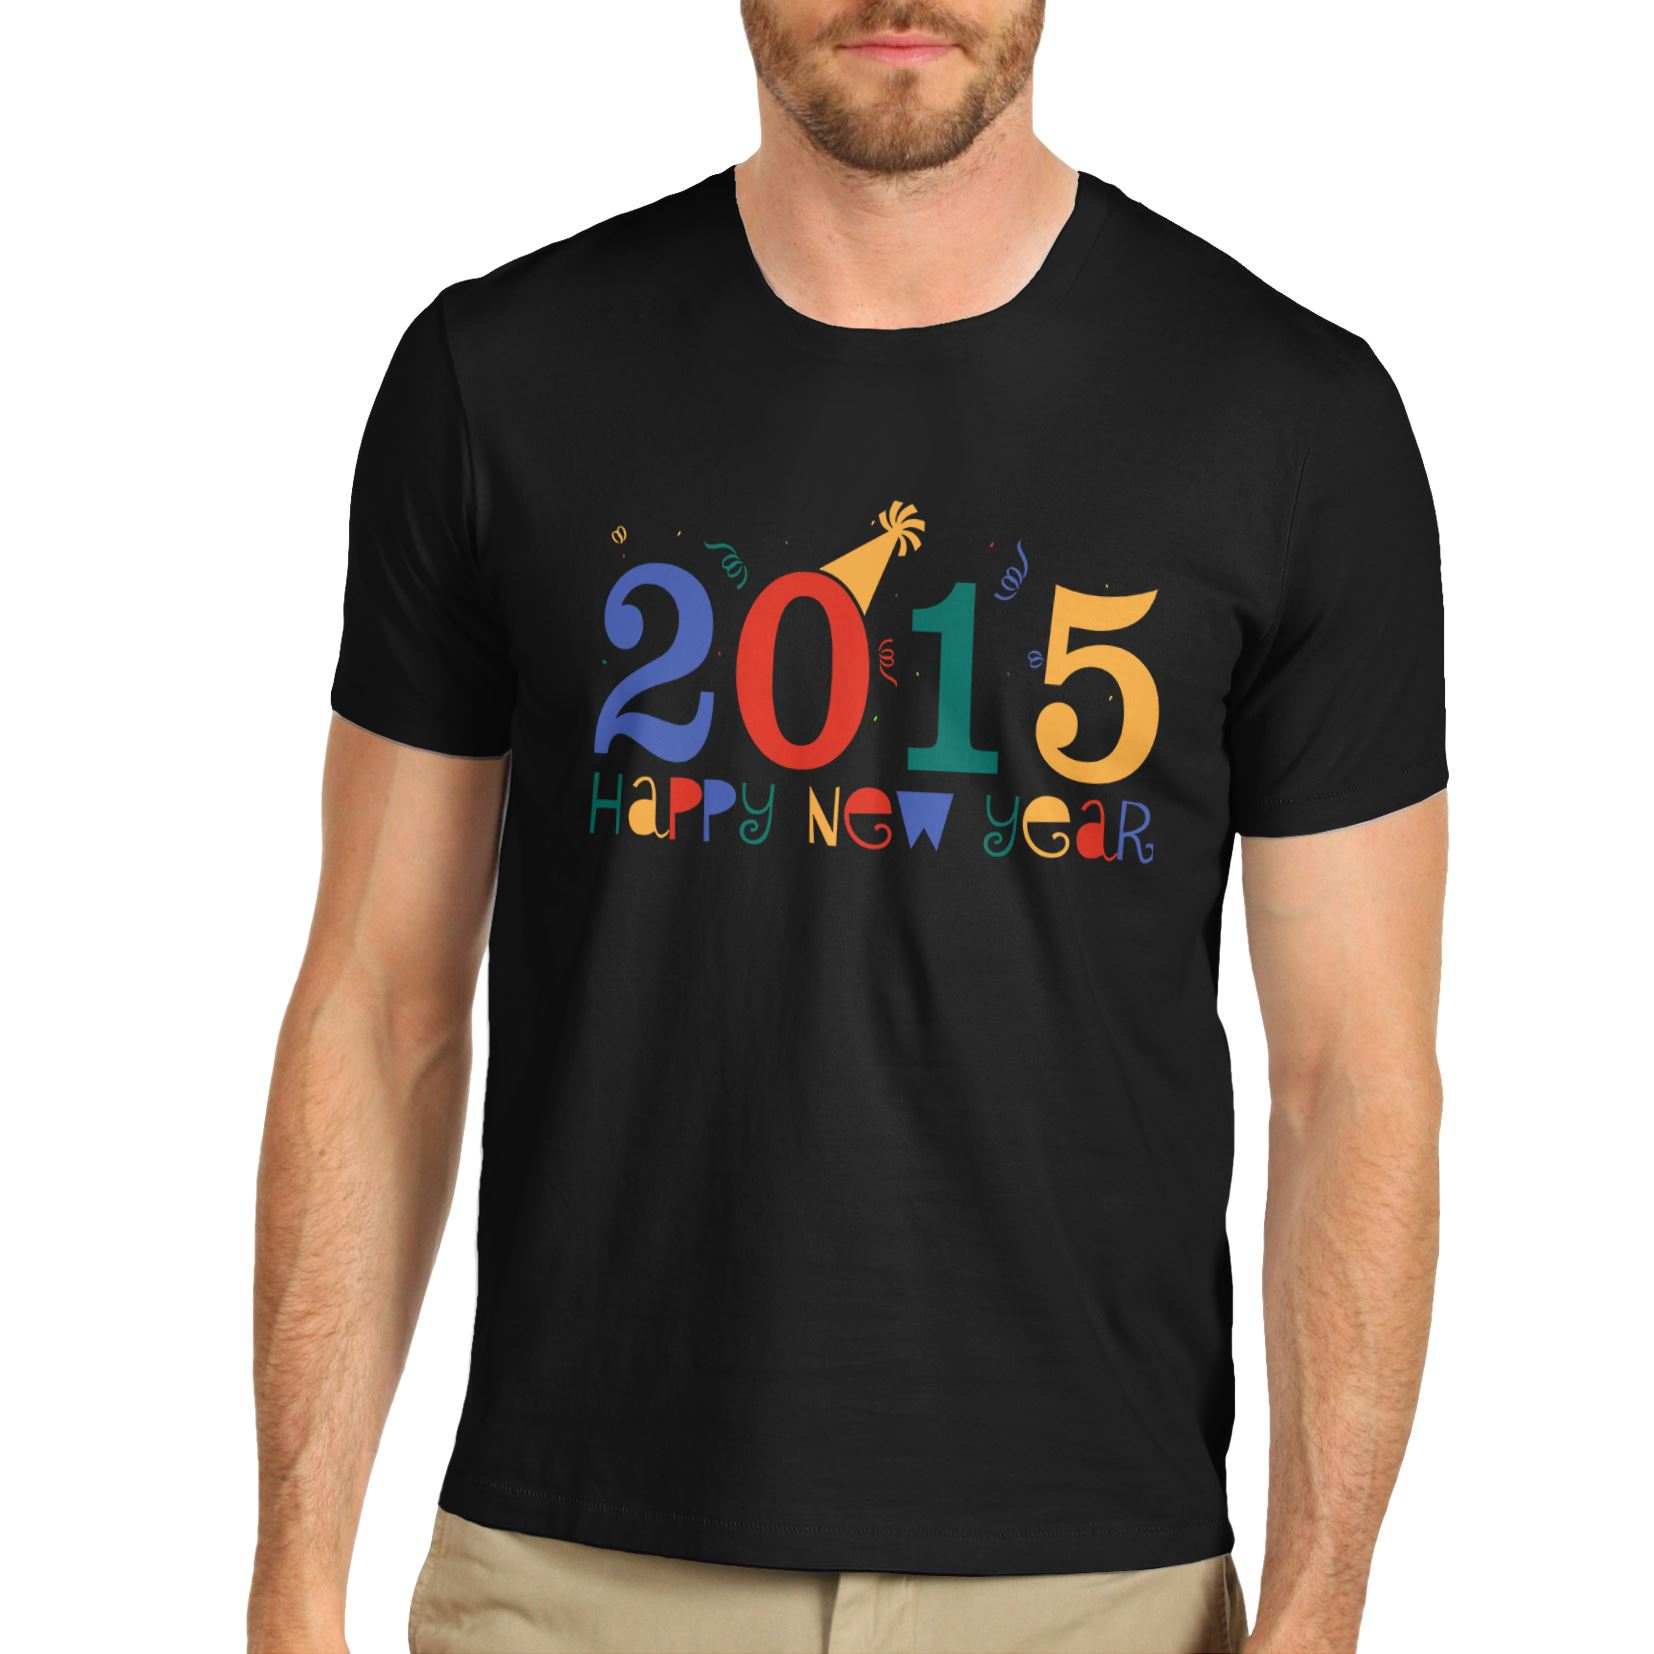 Men s 2015 Happy New Year Party Crewneck T Shirt   eBay Men 039 s 2015 Happy New Year Party